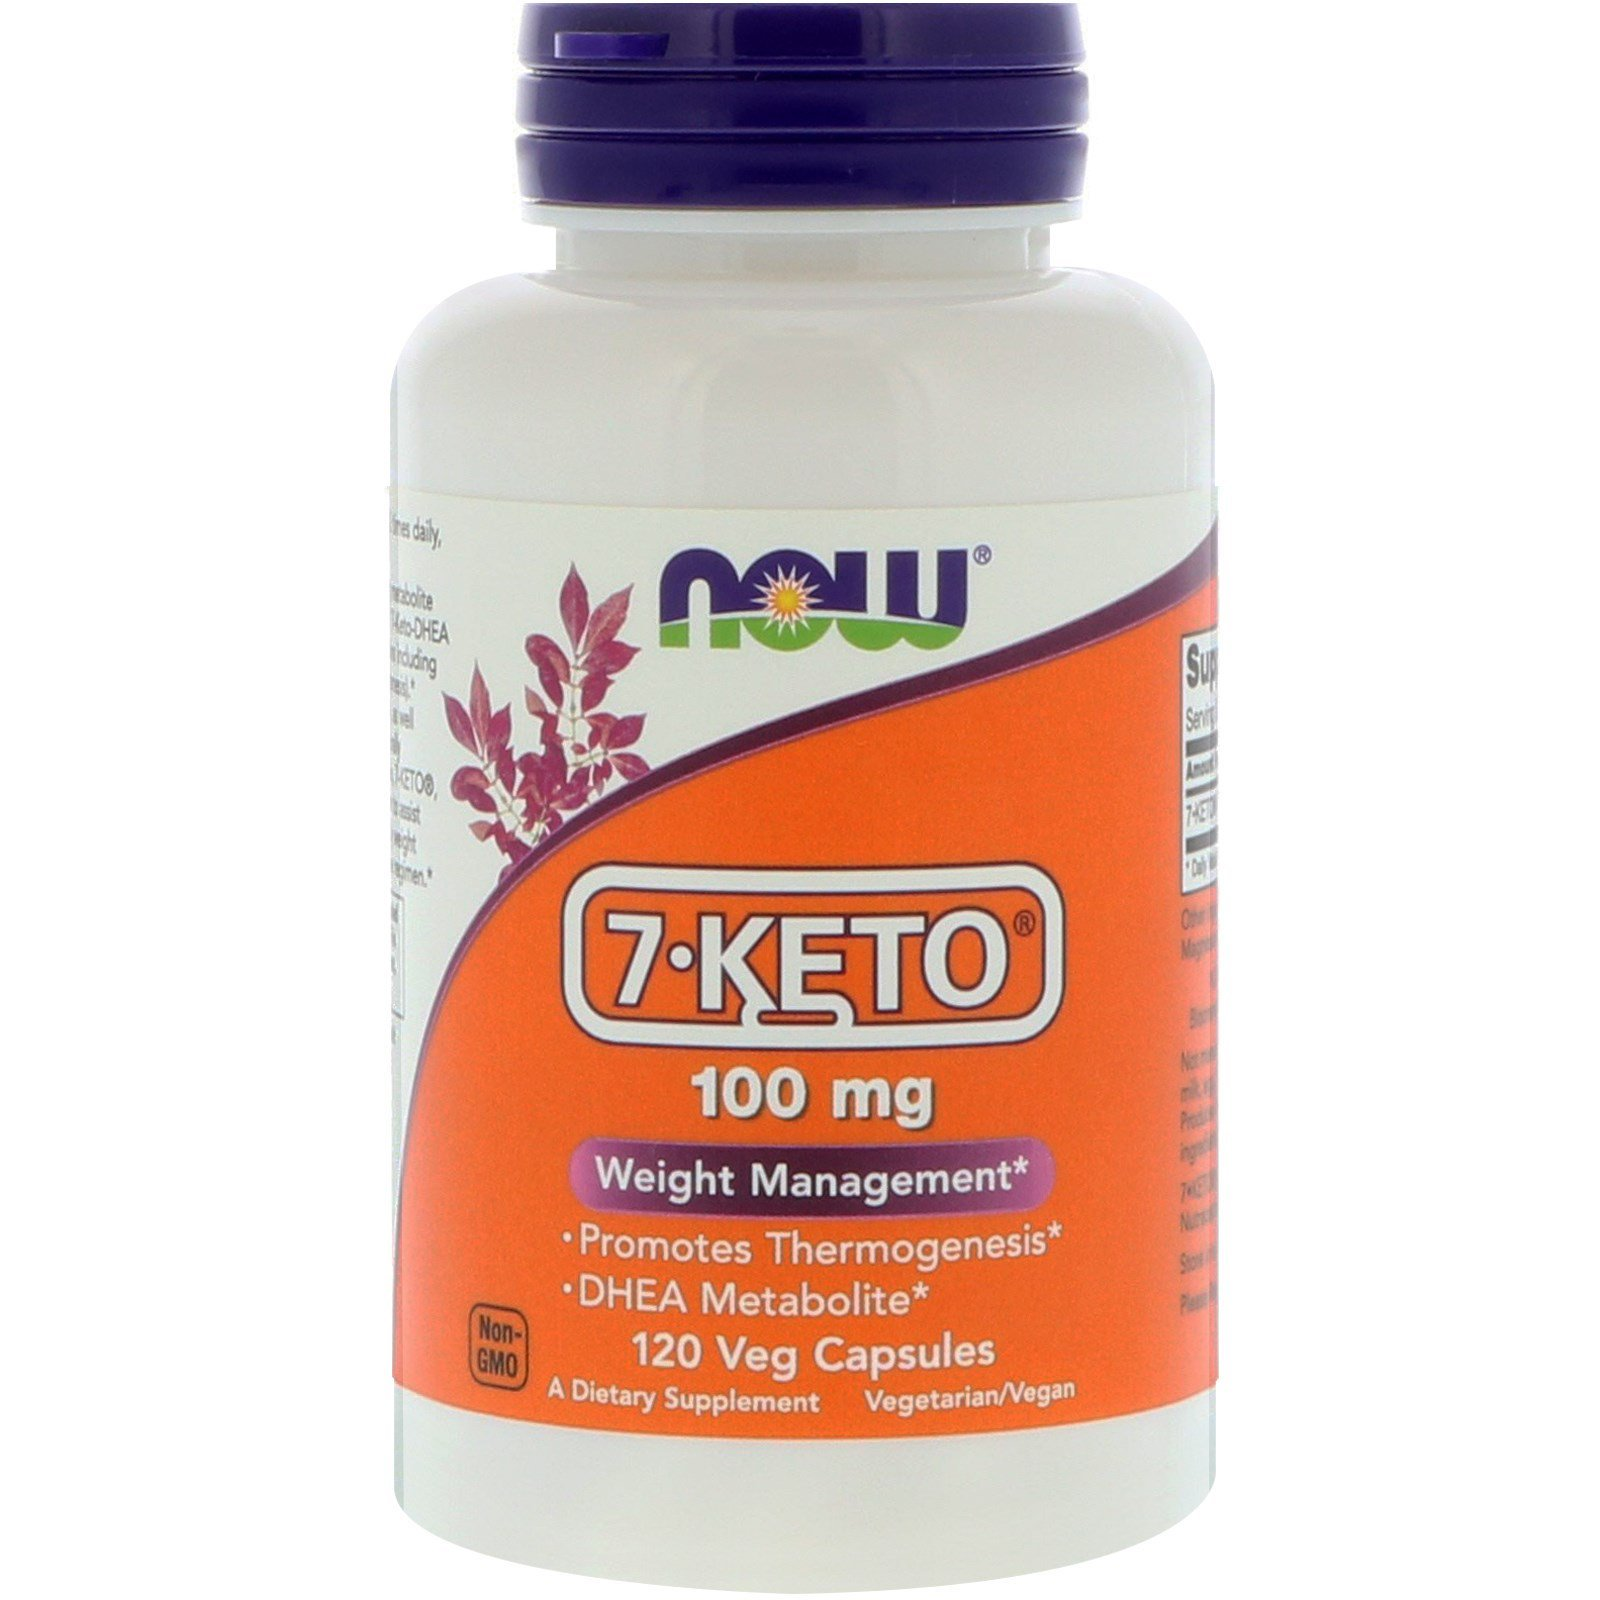 7 кето DHEA, 7-Keto, Now Foods, 100 мг, 120 капсул,